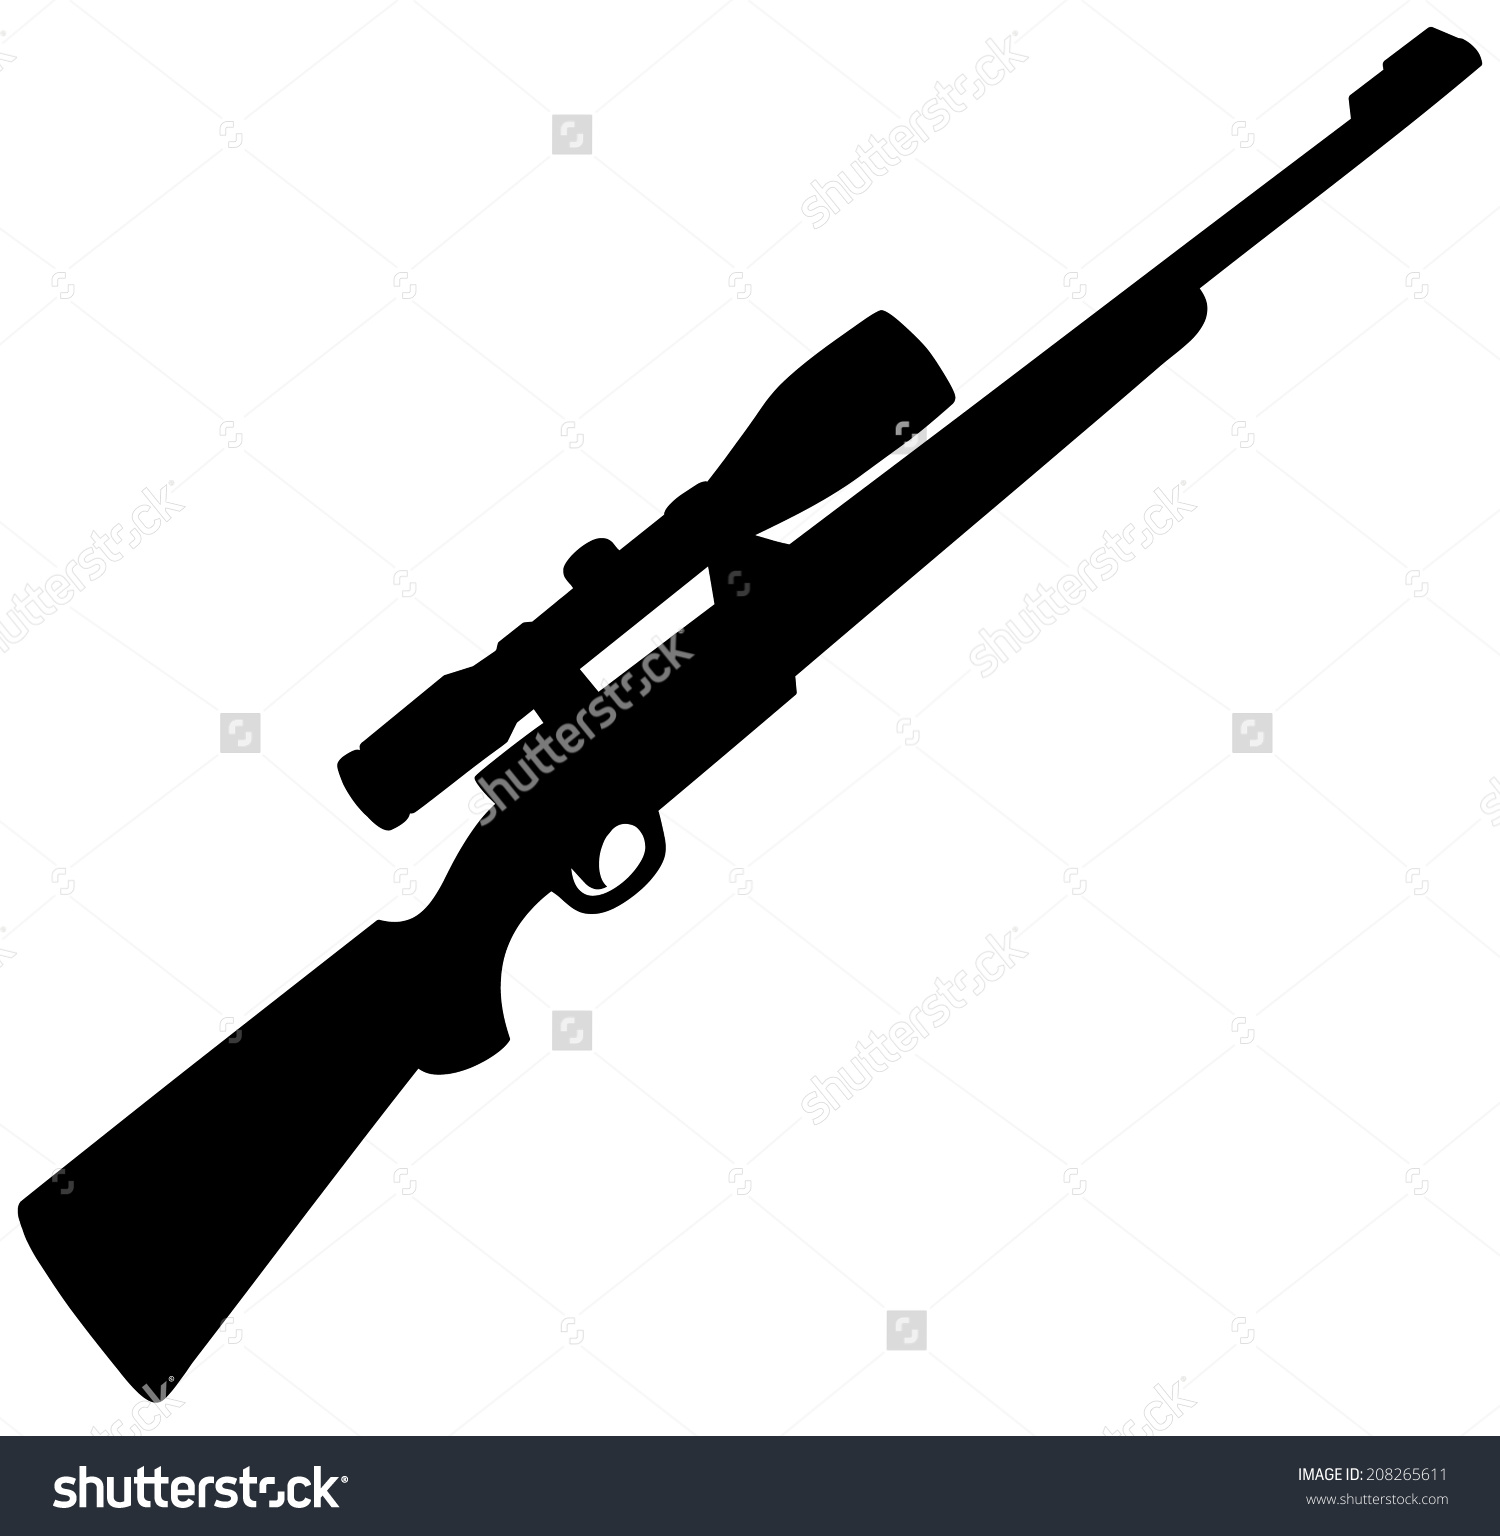 Hunting rifle clipart.